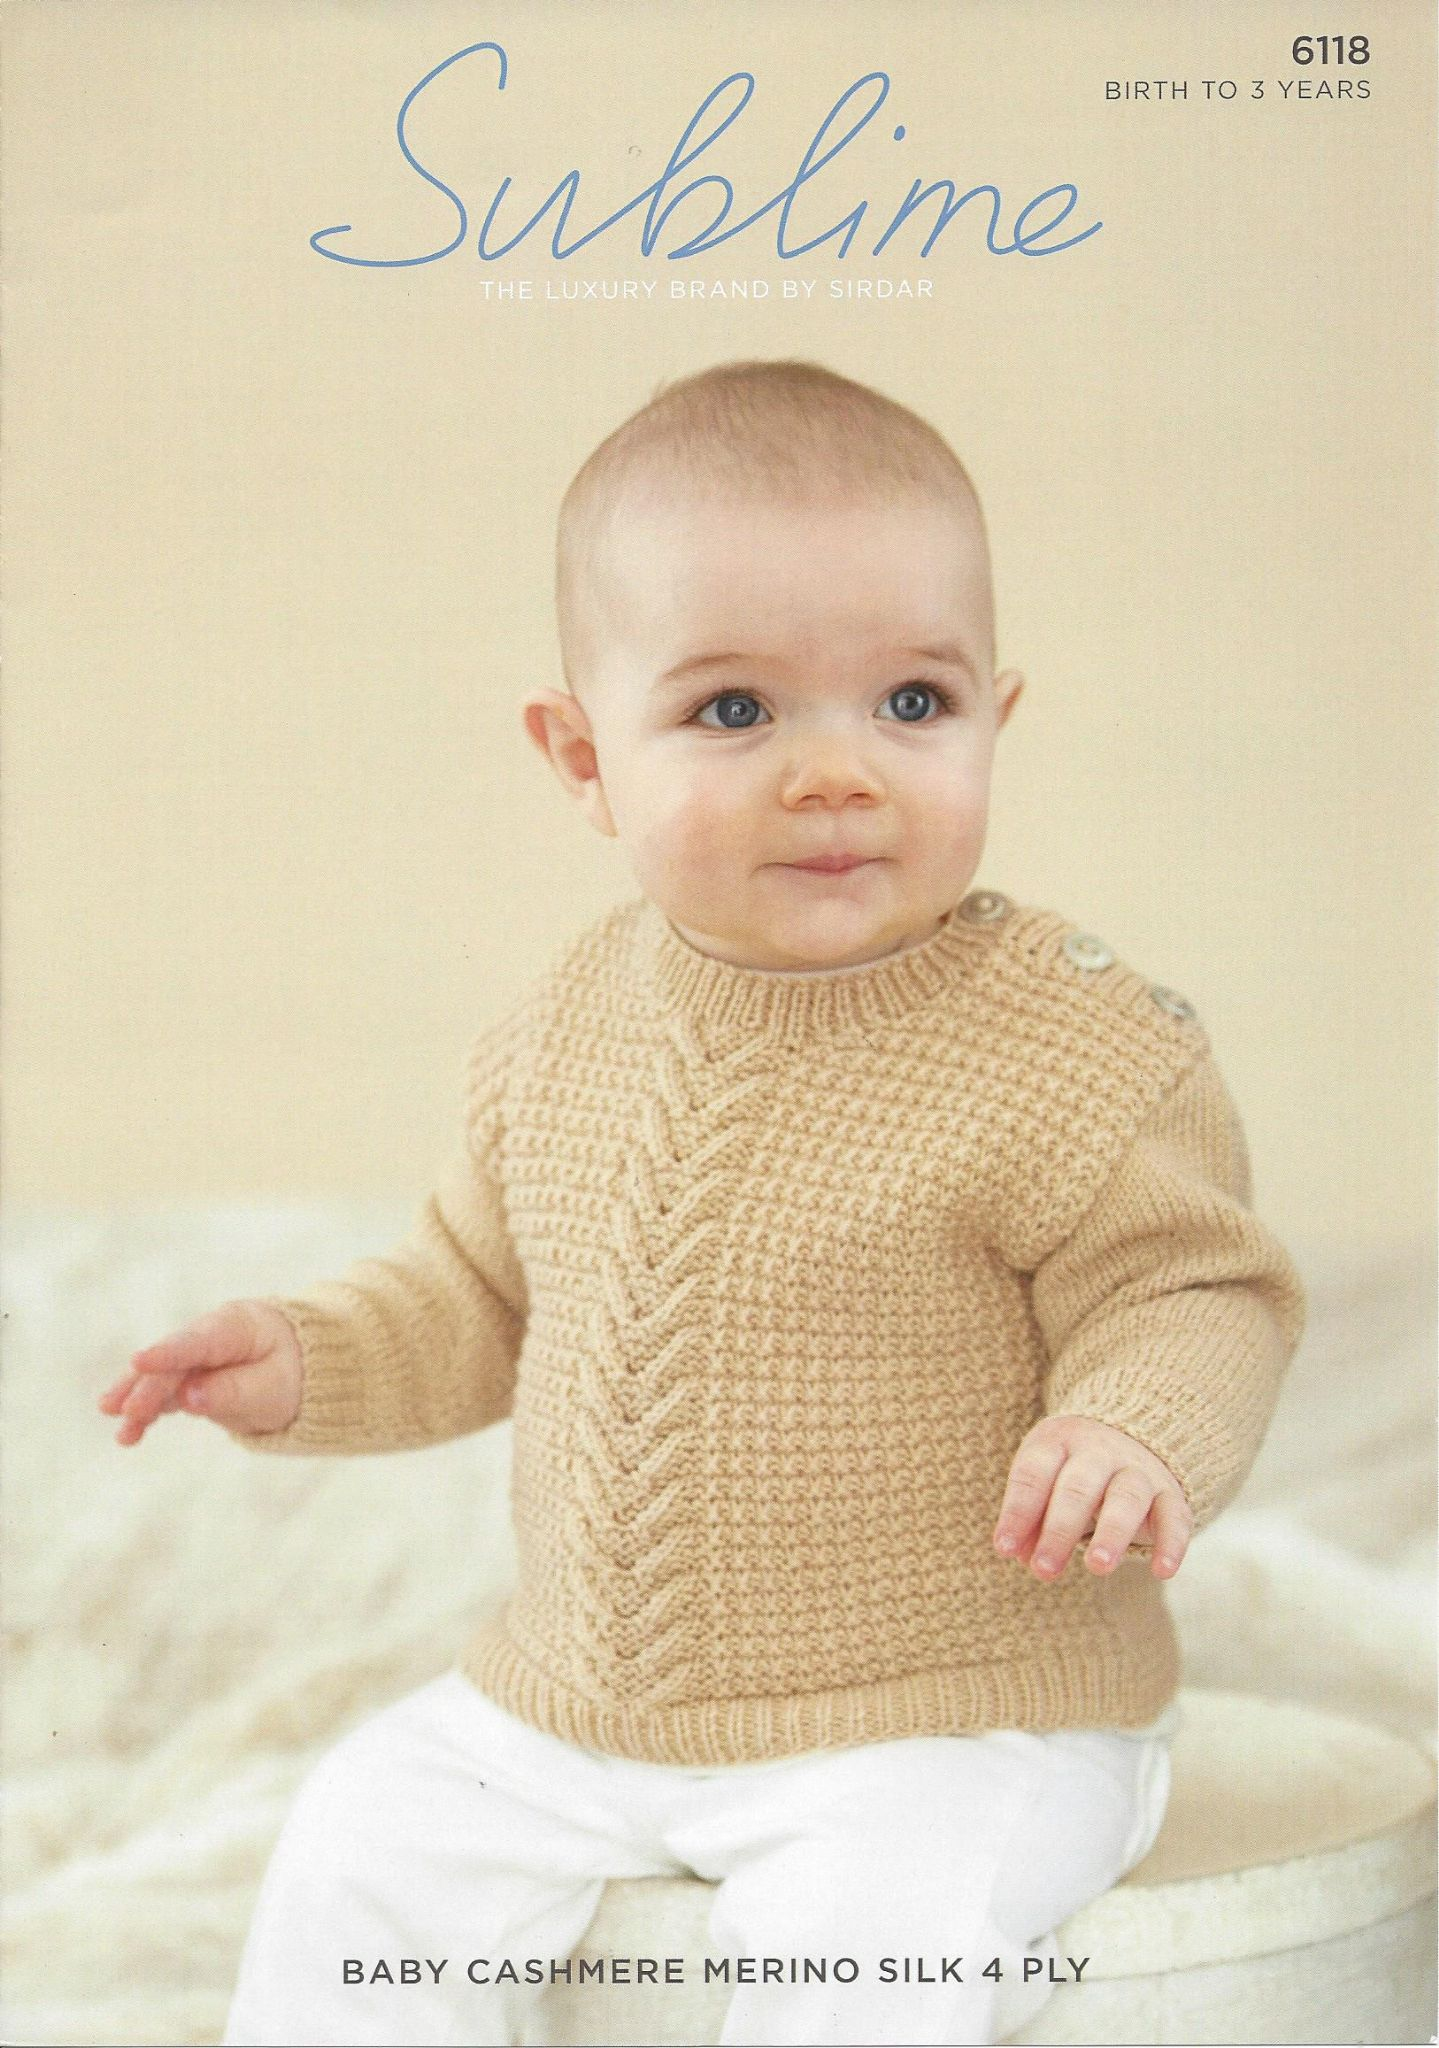 6118 BabyBoy's Sweater Knitting Pattern